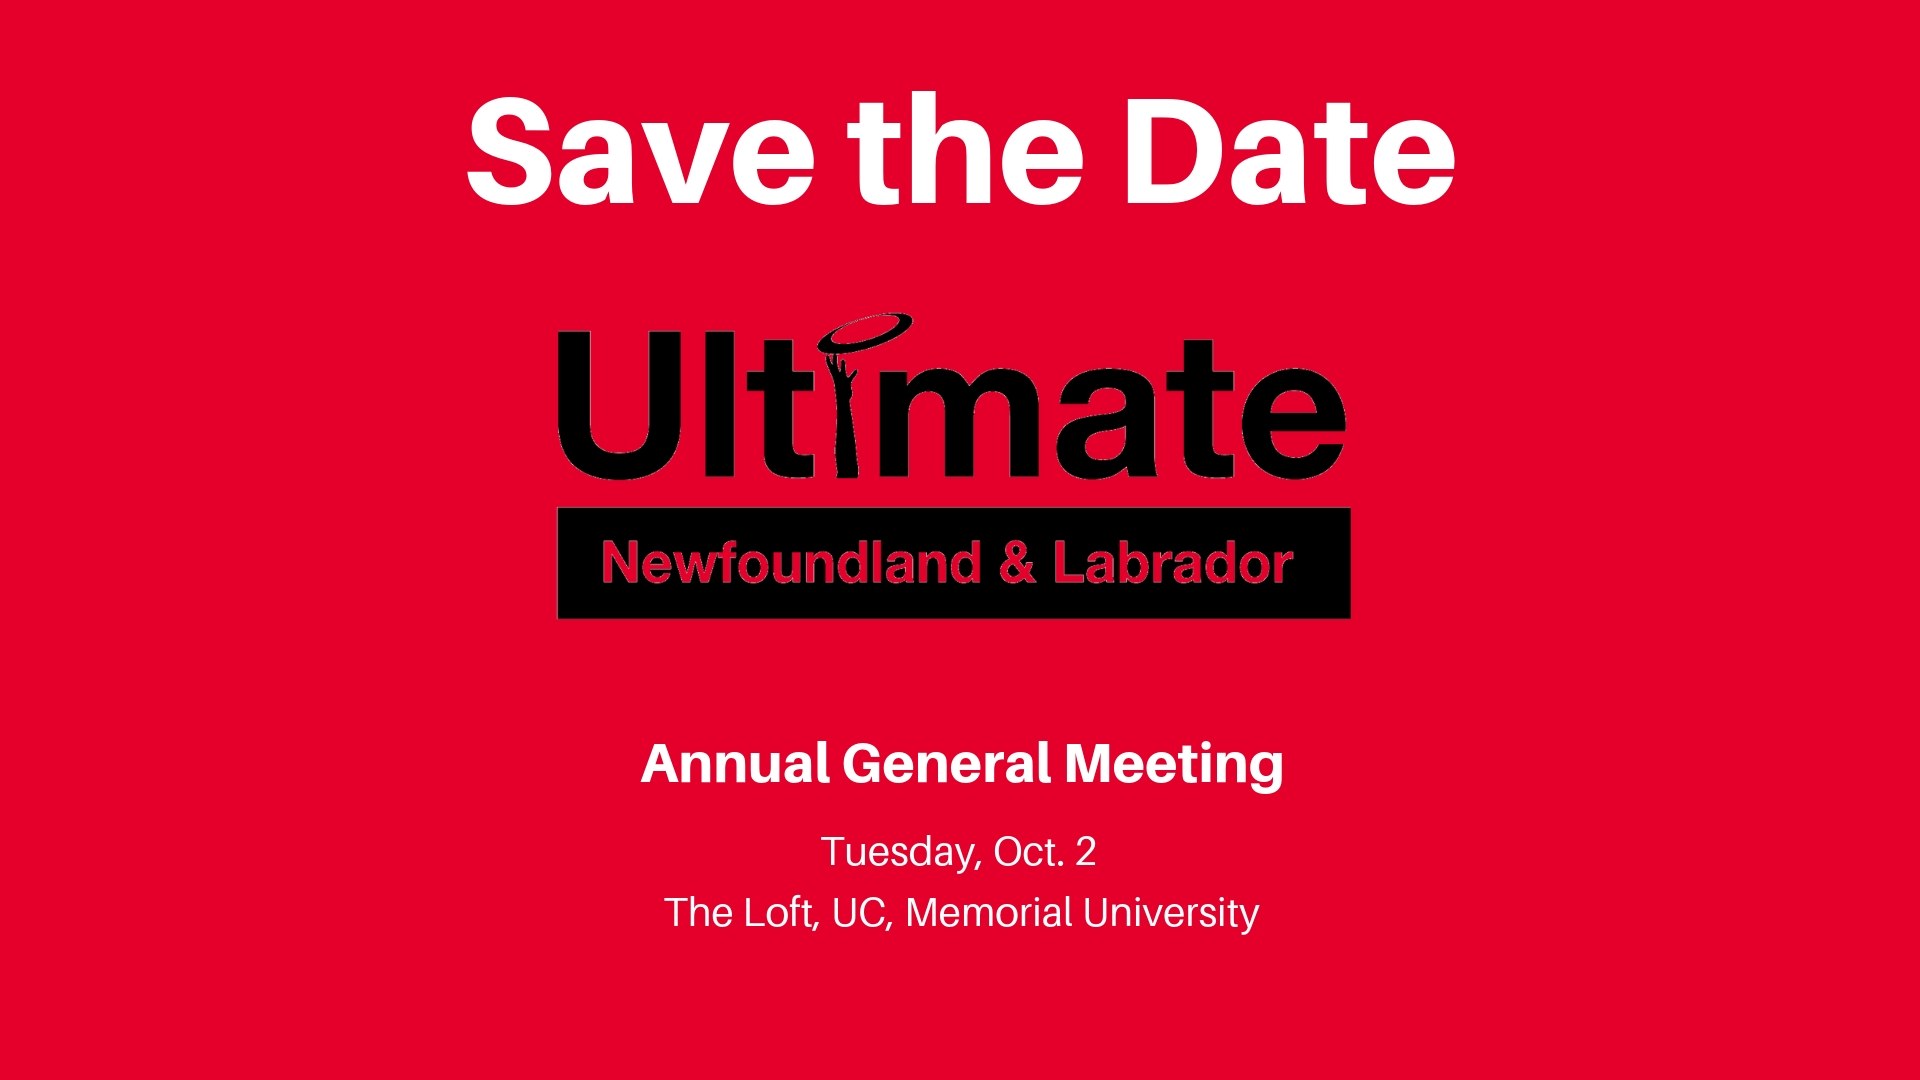 Ultimate NL's annual general meeting will be held on Tuesday, Oct. 2.